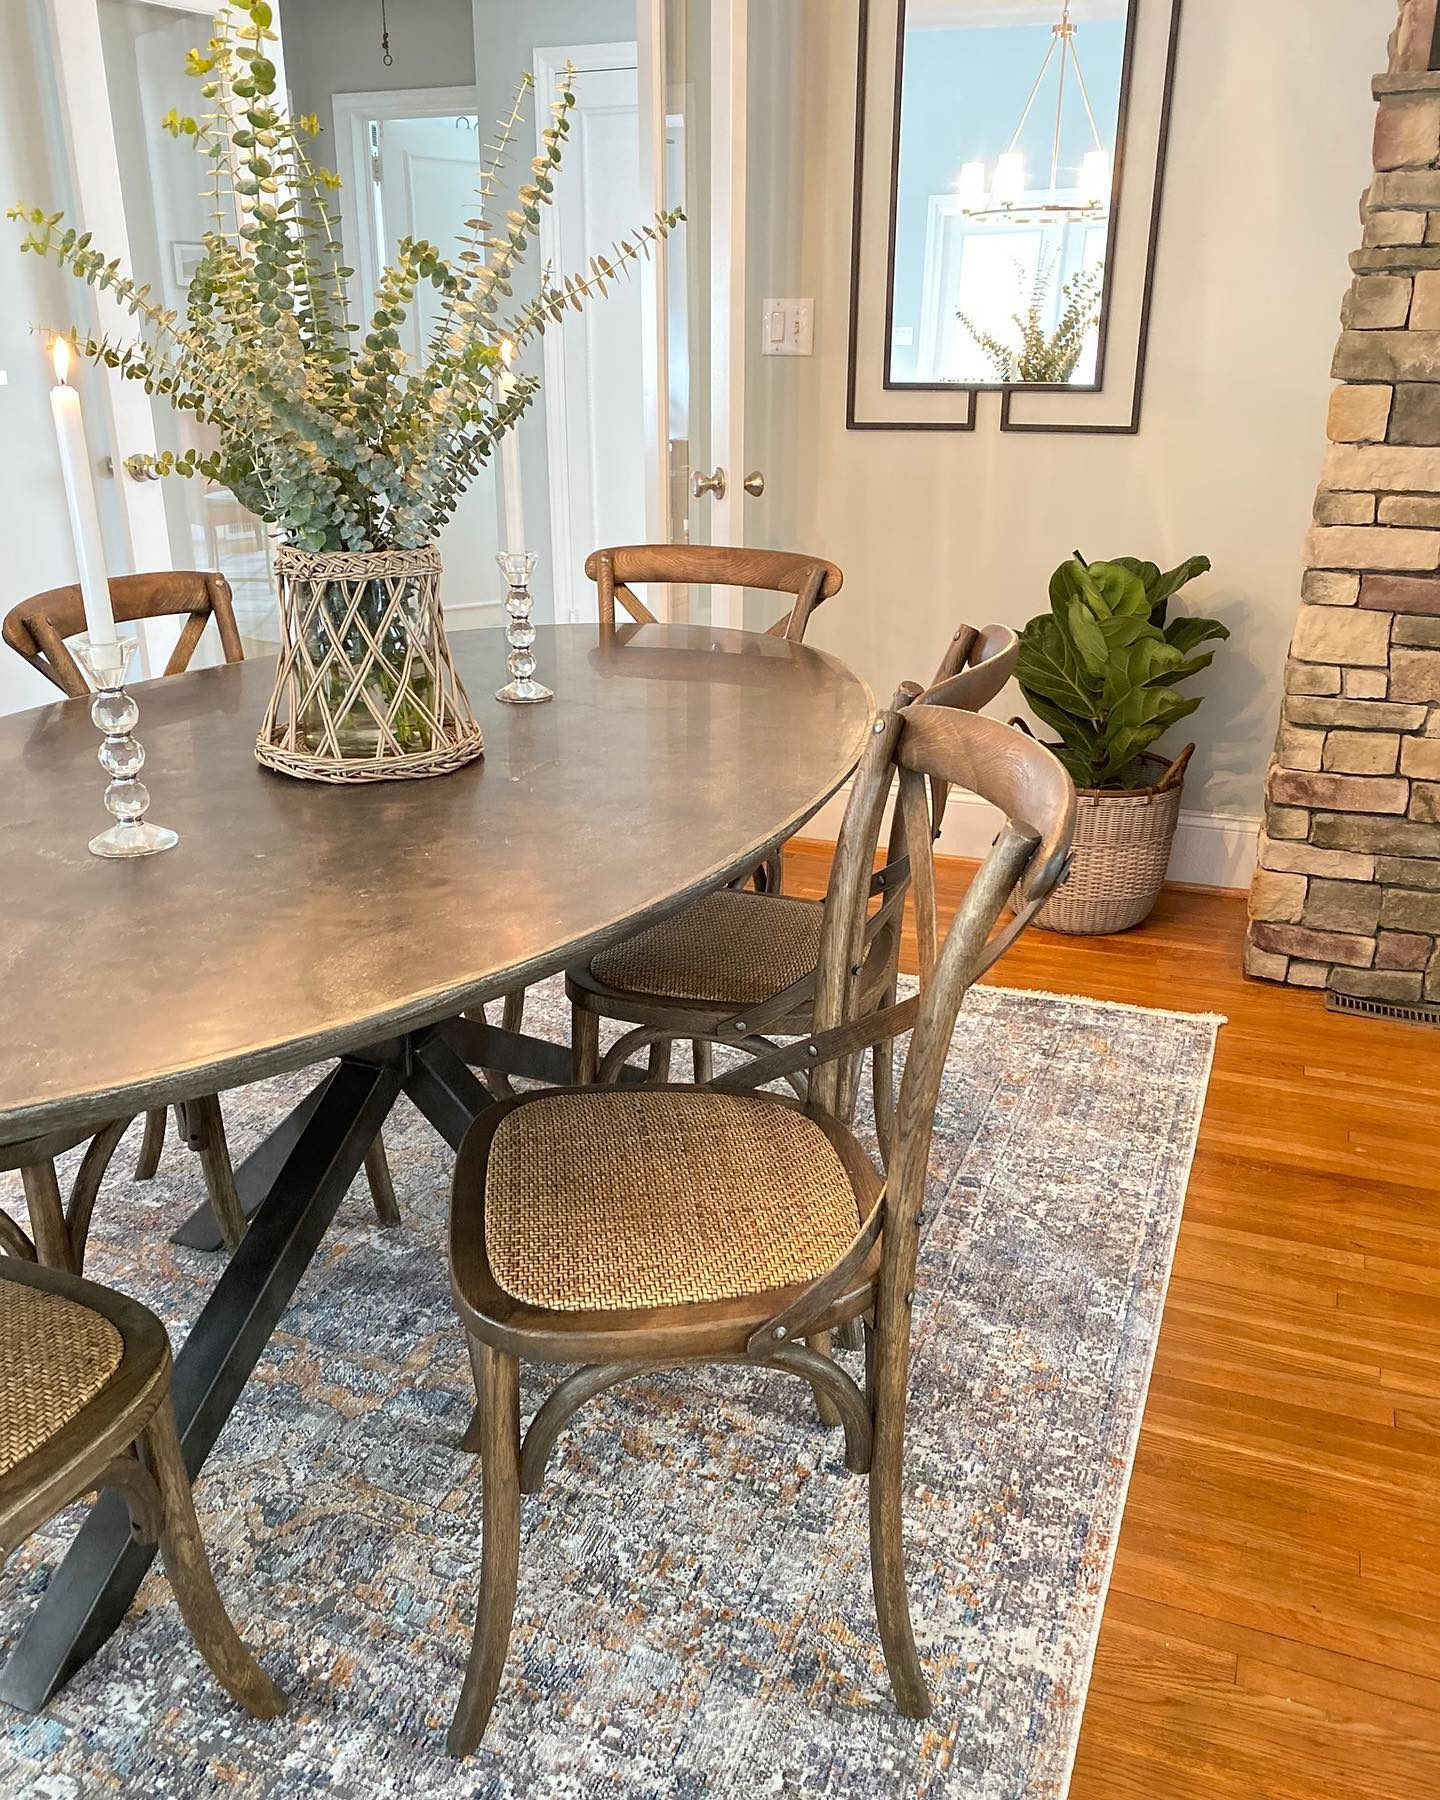 Cadence Dining Chair Arhaus In 2020 Dining Room Furnishings Dining Room Chairs Upholstered Dining Chairs